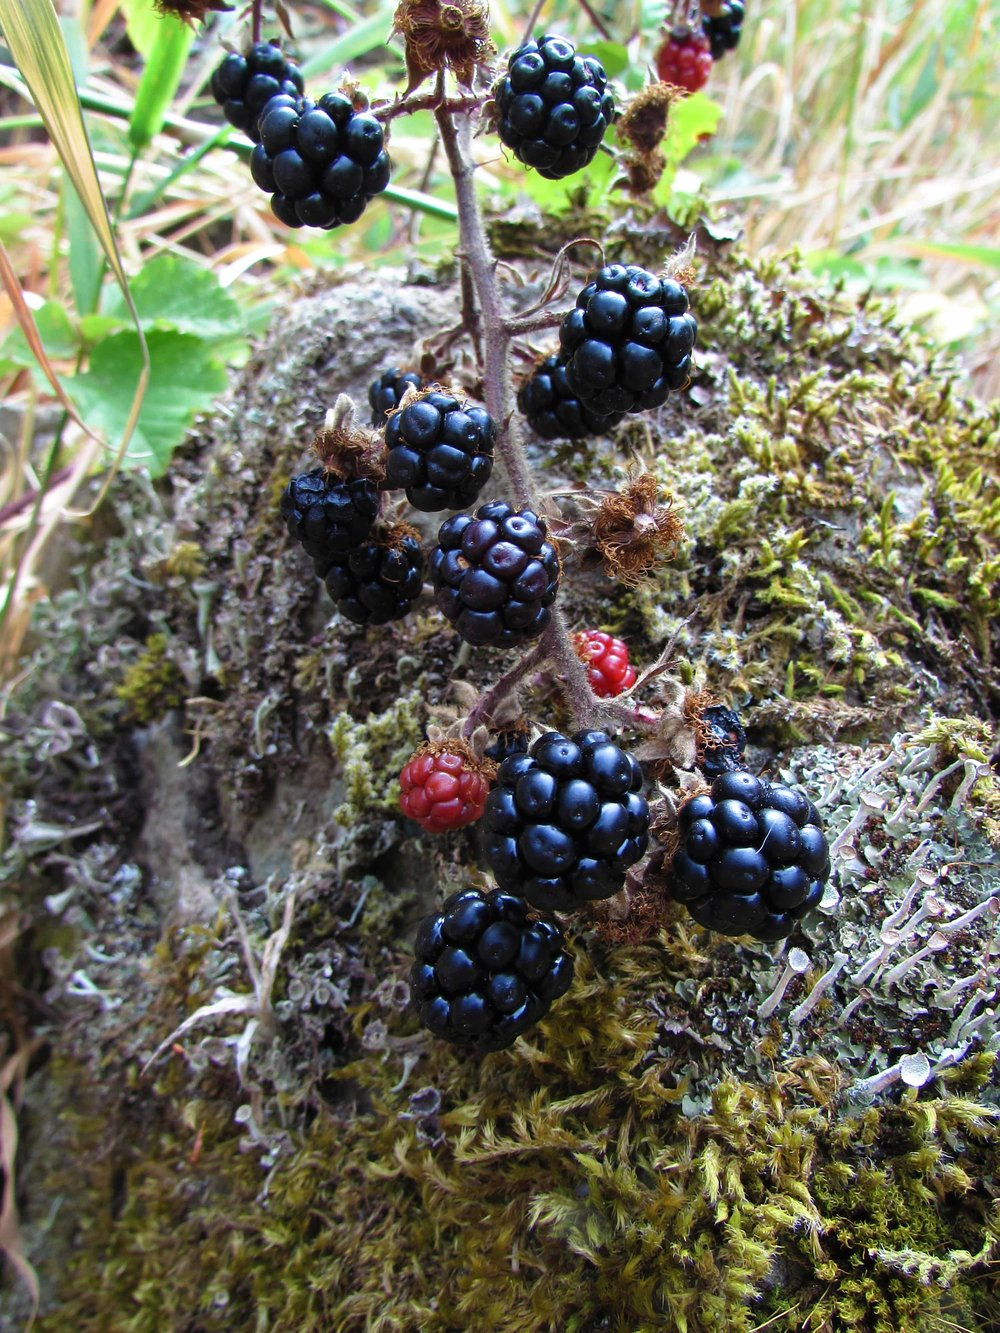 Ripe blackberries ready for the taking.